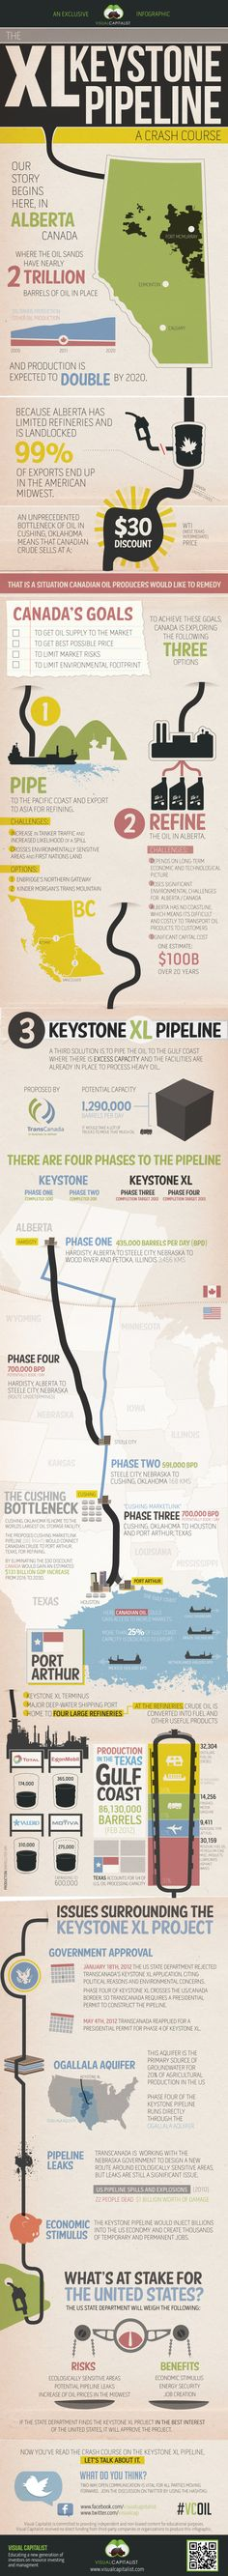 The Keystone XL Pipeline: A Crash Course Infographic